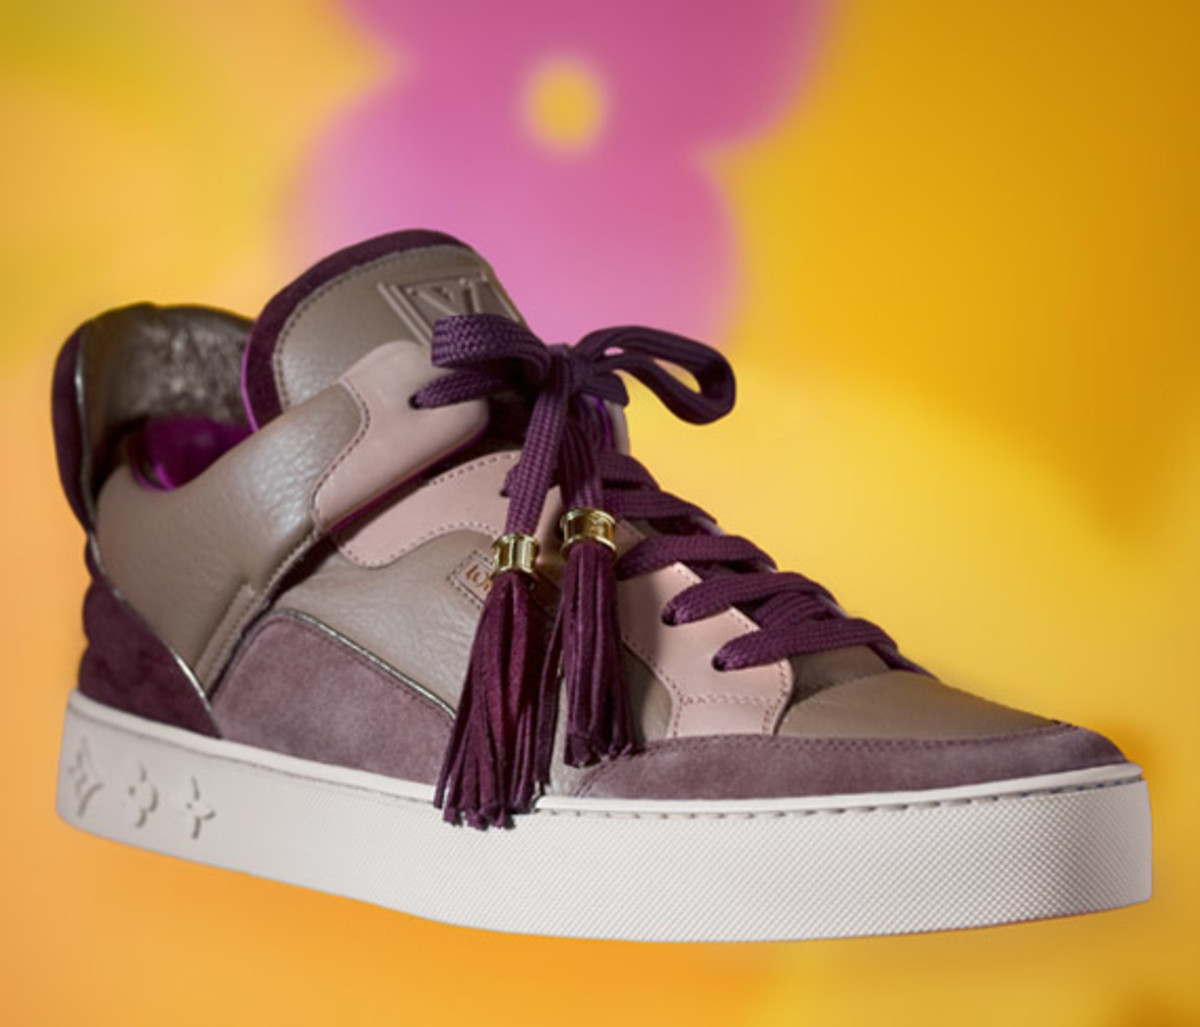 louis-vuitton-x-kanye-west-sneakers-preview-5